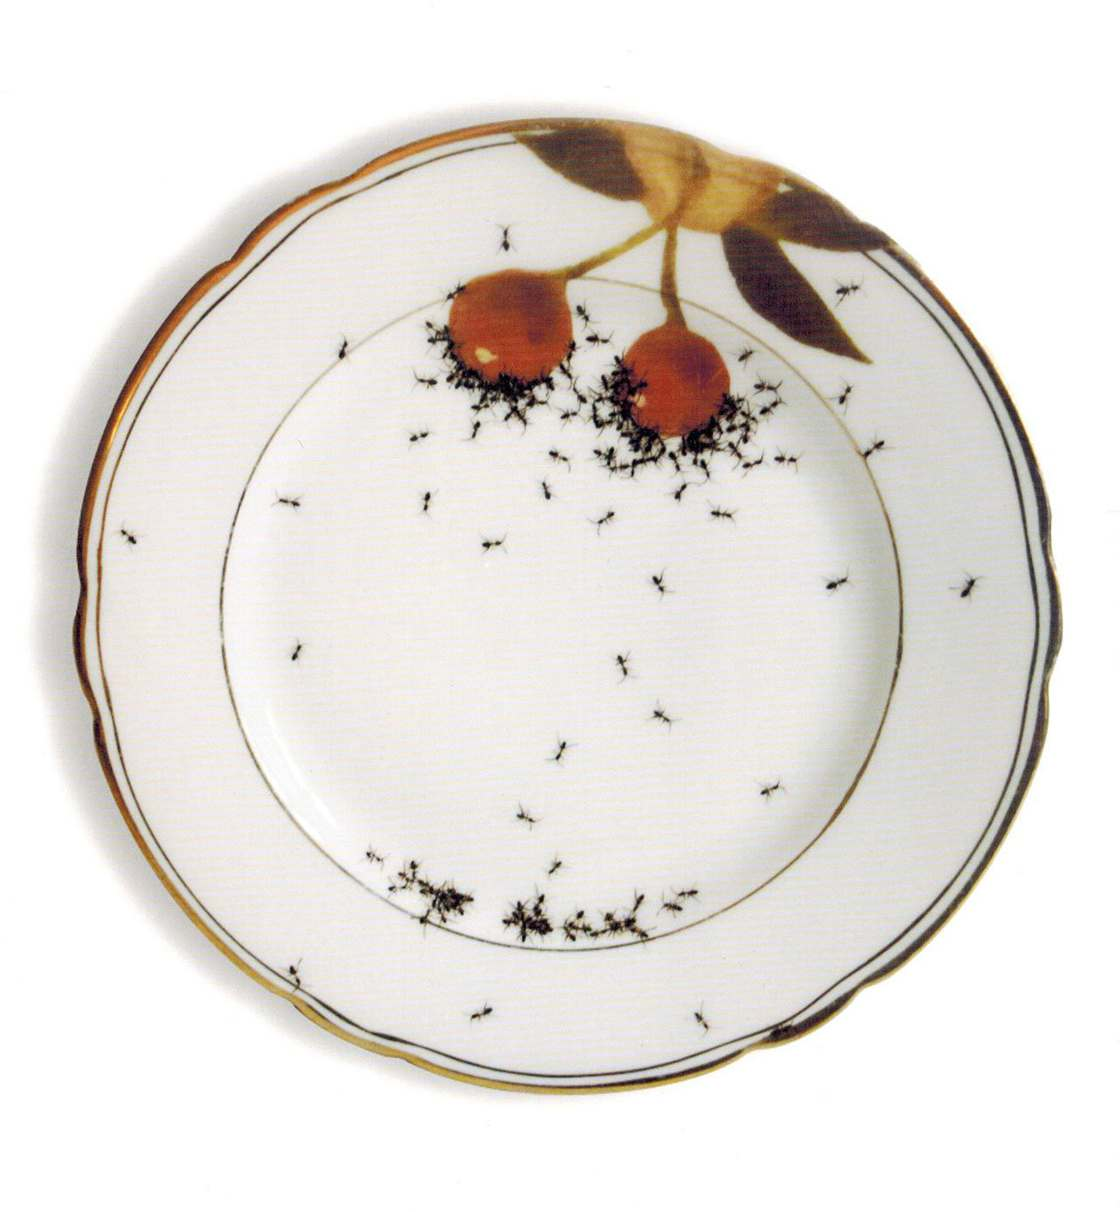 Ants everywhere - The disturbing tableware of Evelyn Bracklow